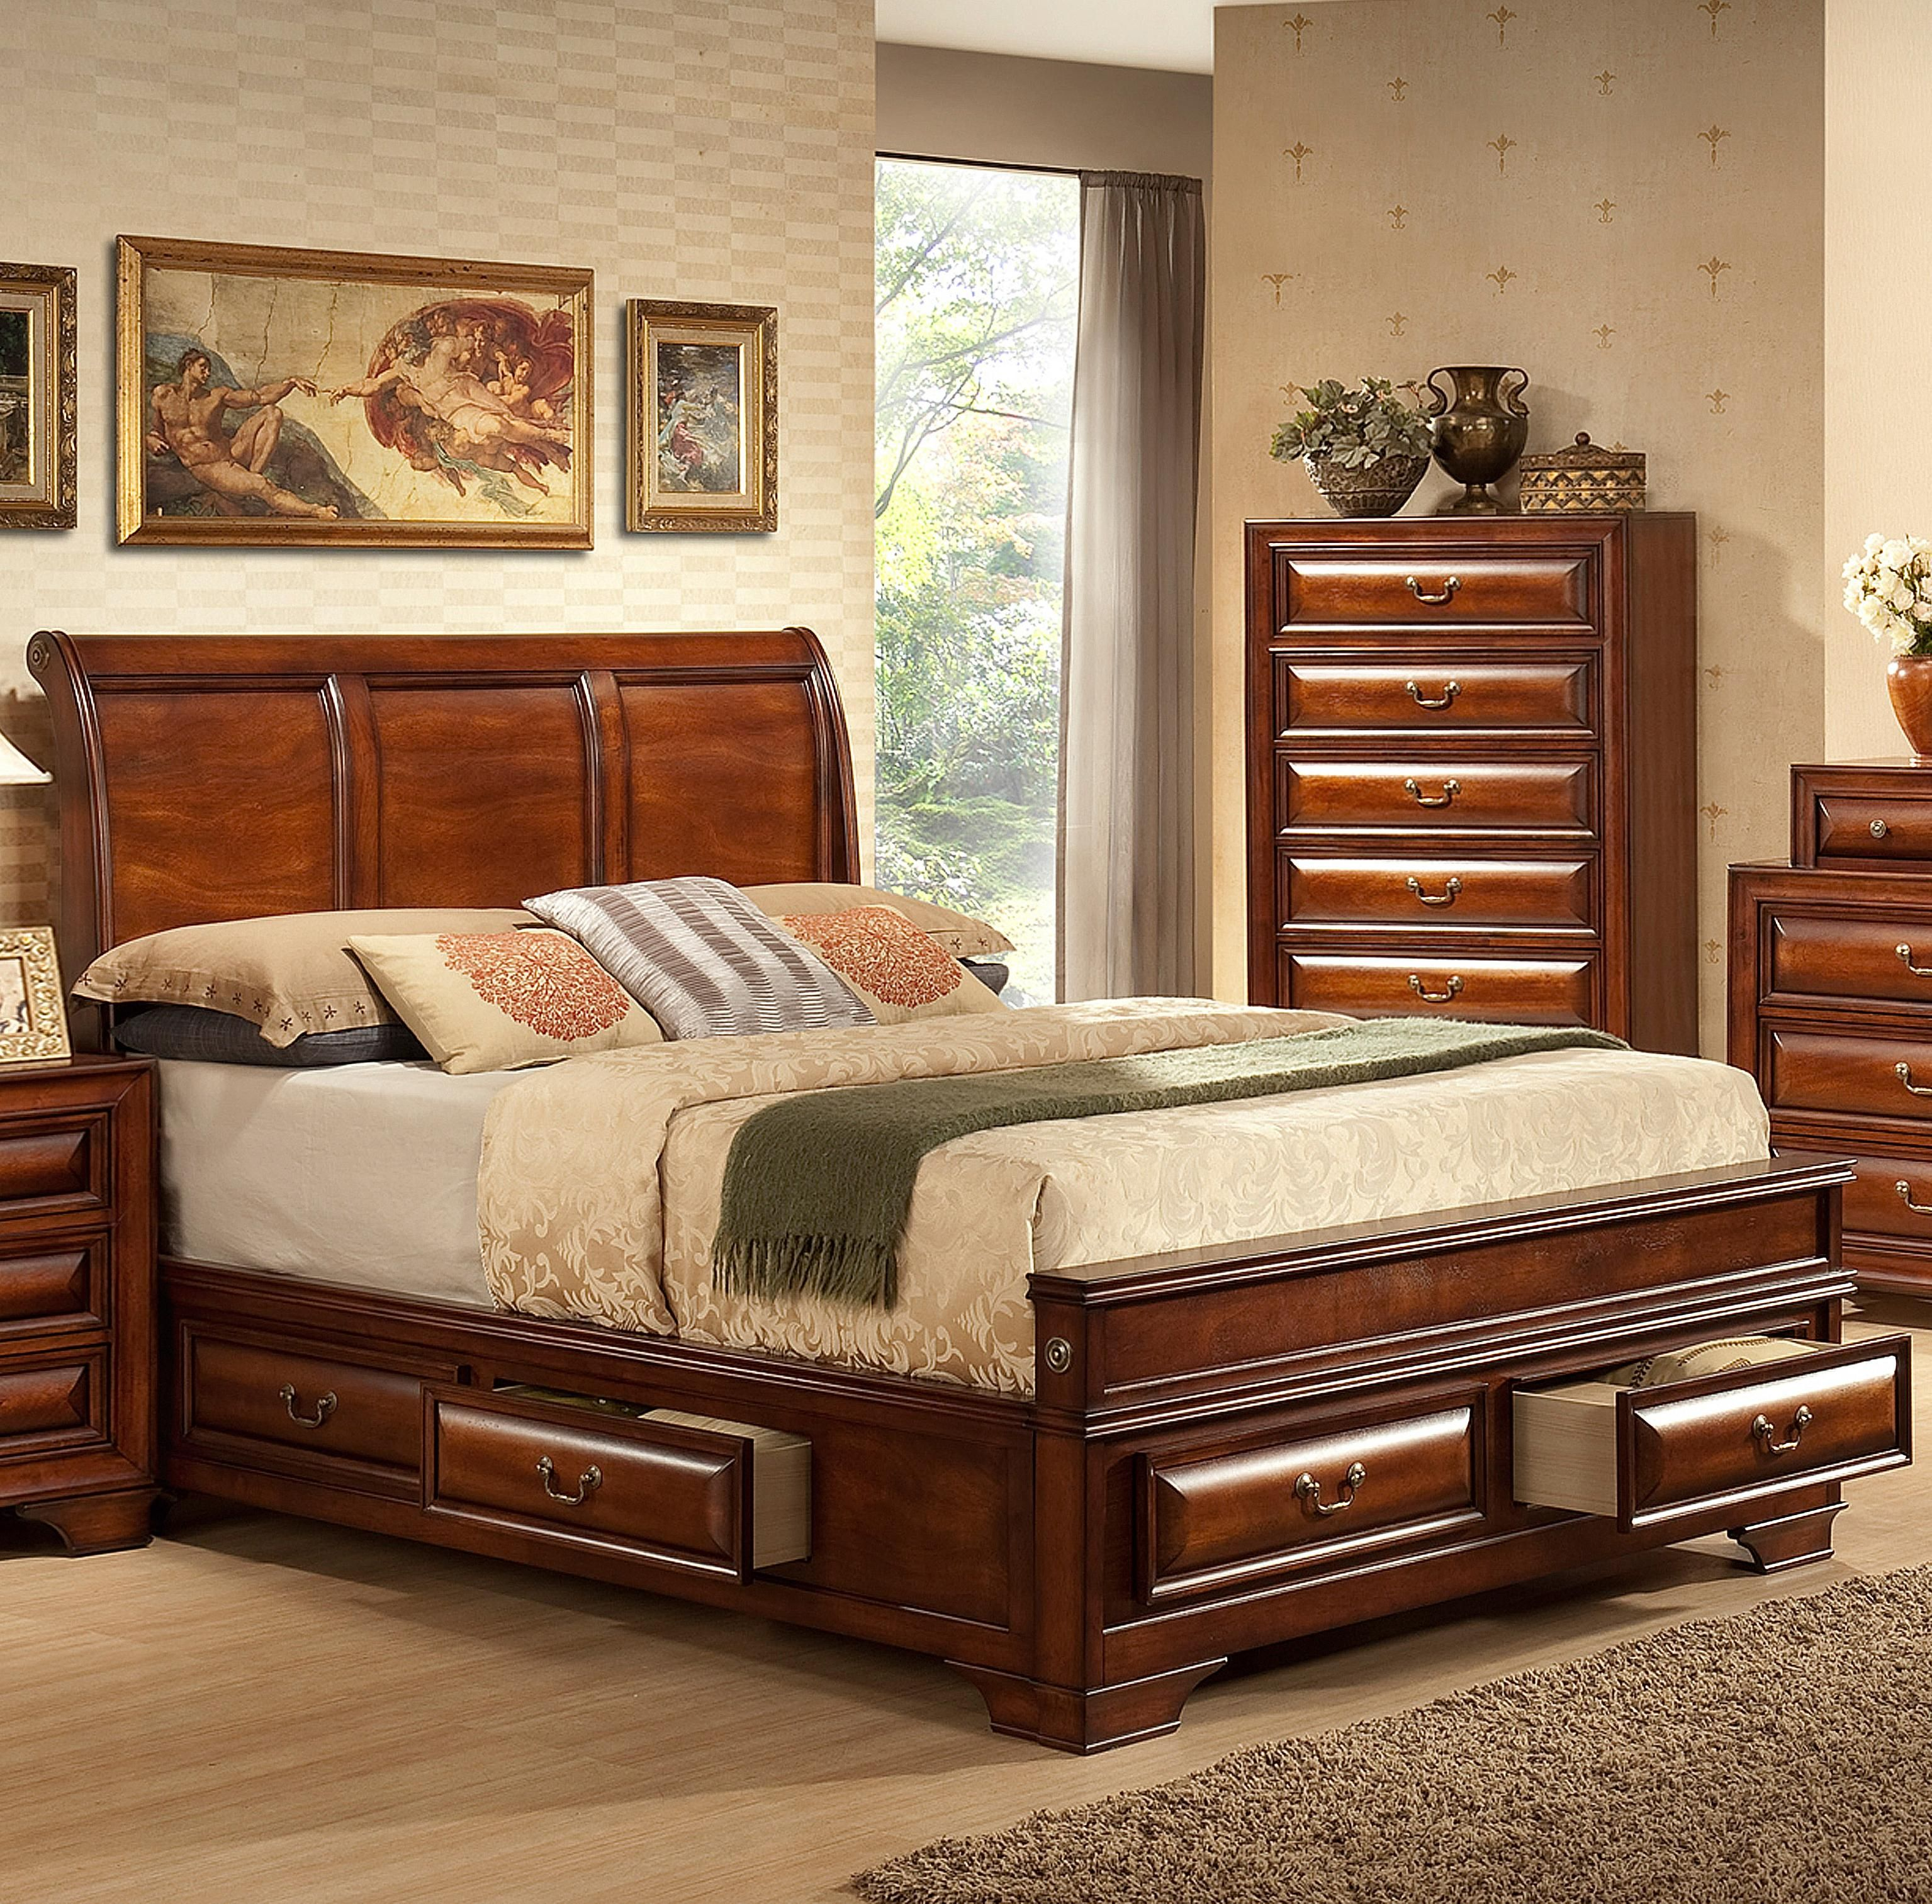 Best B1172 Queen Captain S Bed By Lifestyle Wood Sleigh Bed 400 x 300